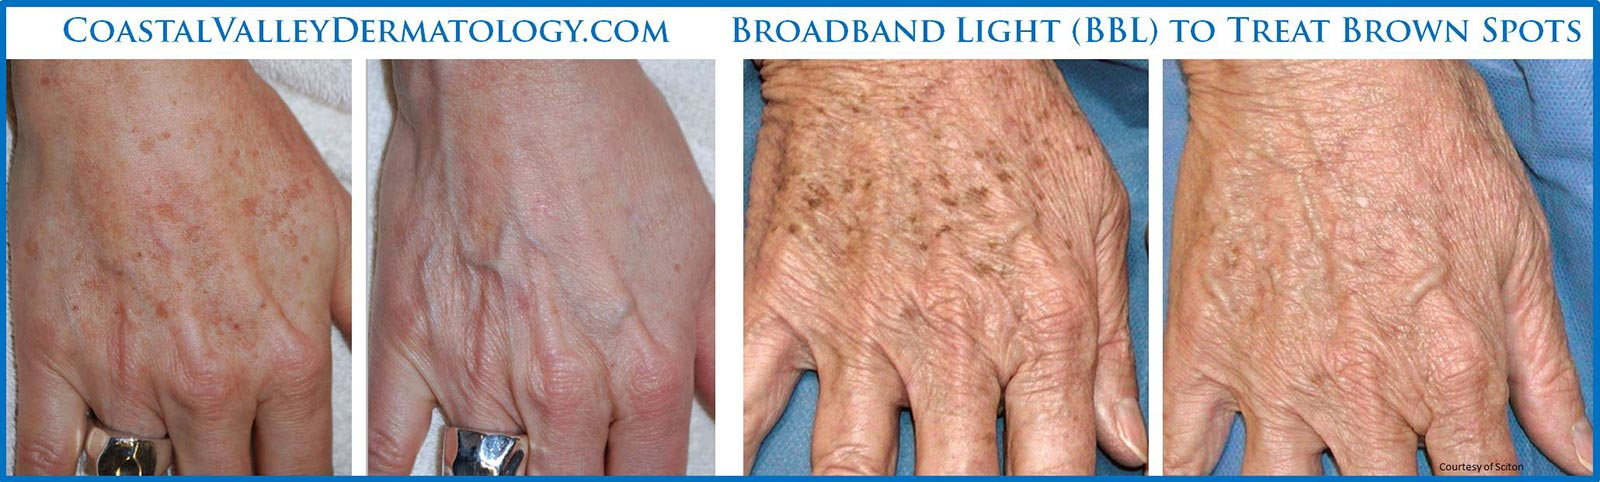 coastal-valley-dermatology-carmel-hands-brown-spots-treatment-photo